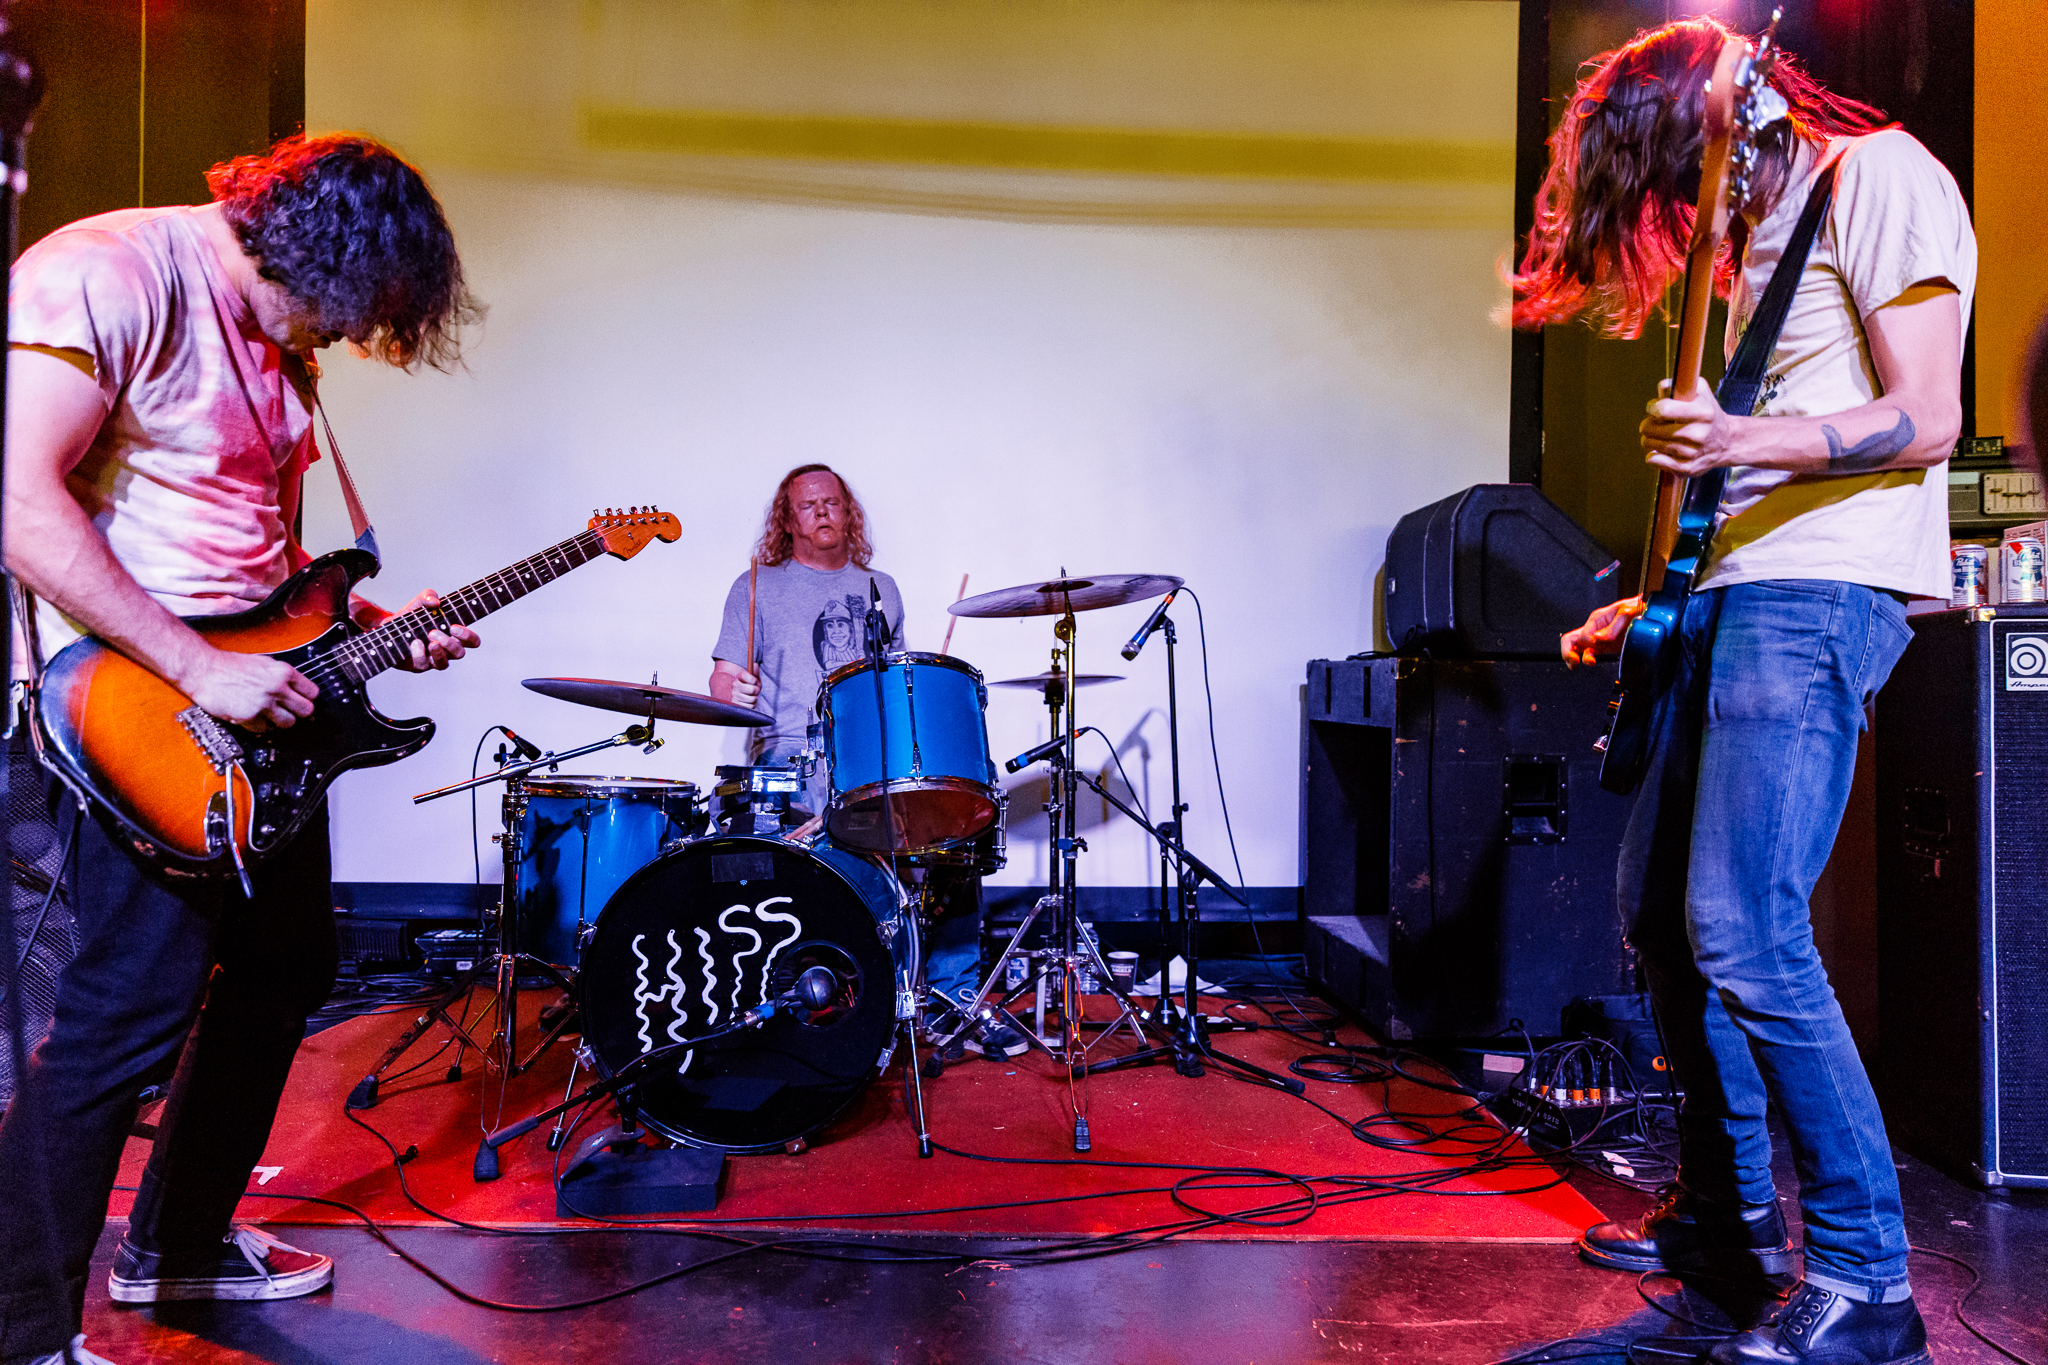 Purling Hiss performing at Hopscotch Music Festival 2017 in Raleigh, NC - 9/8/2017 (photo by Matt Condon / @arcane93)